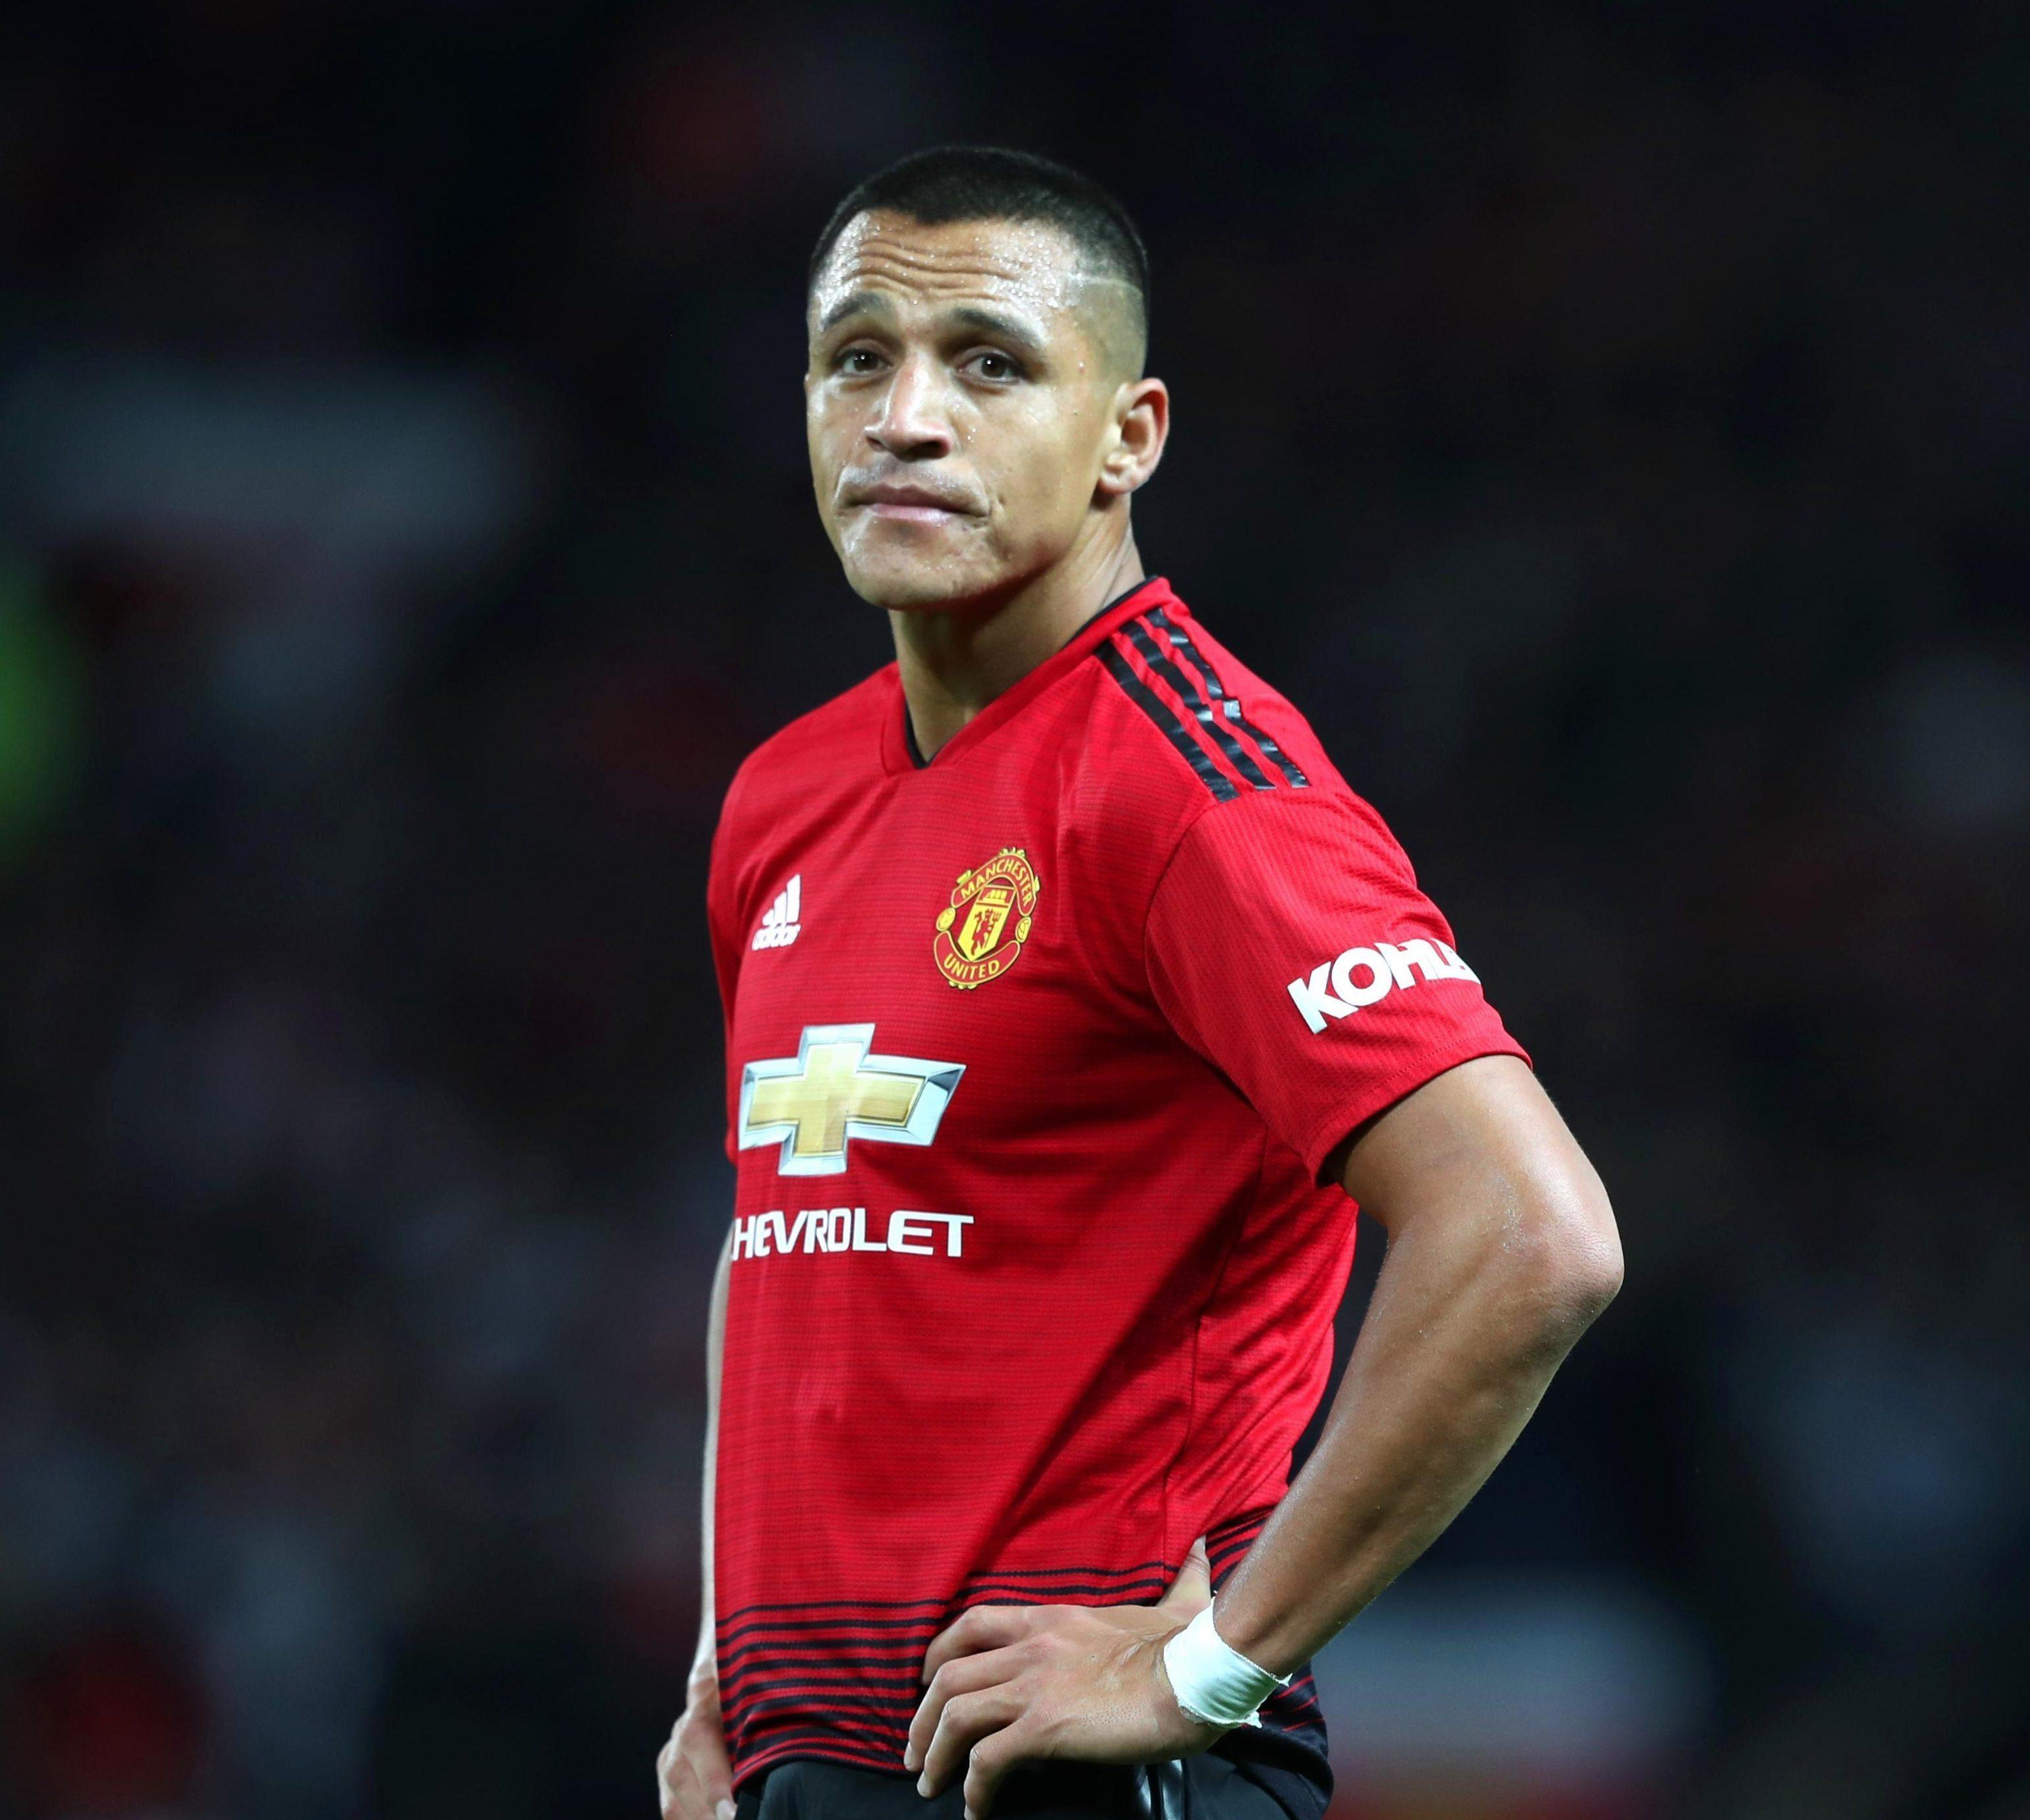 Alexis Sanchez takes home a massive £505,000 per week